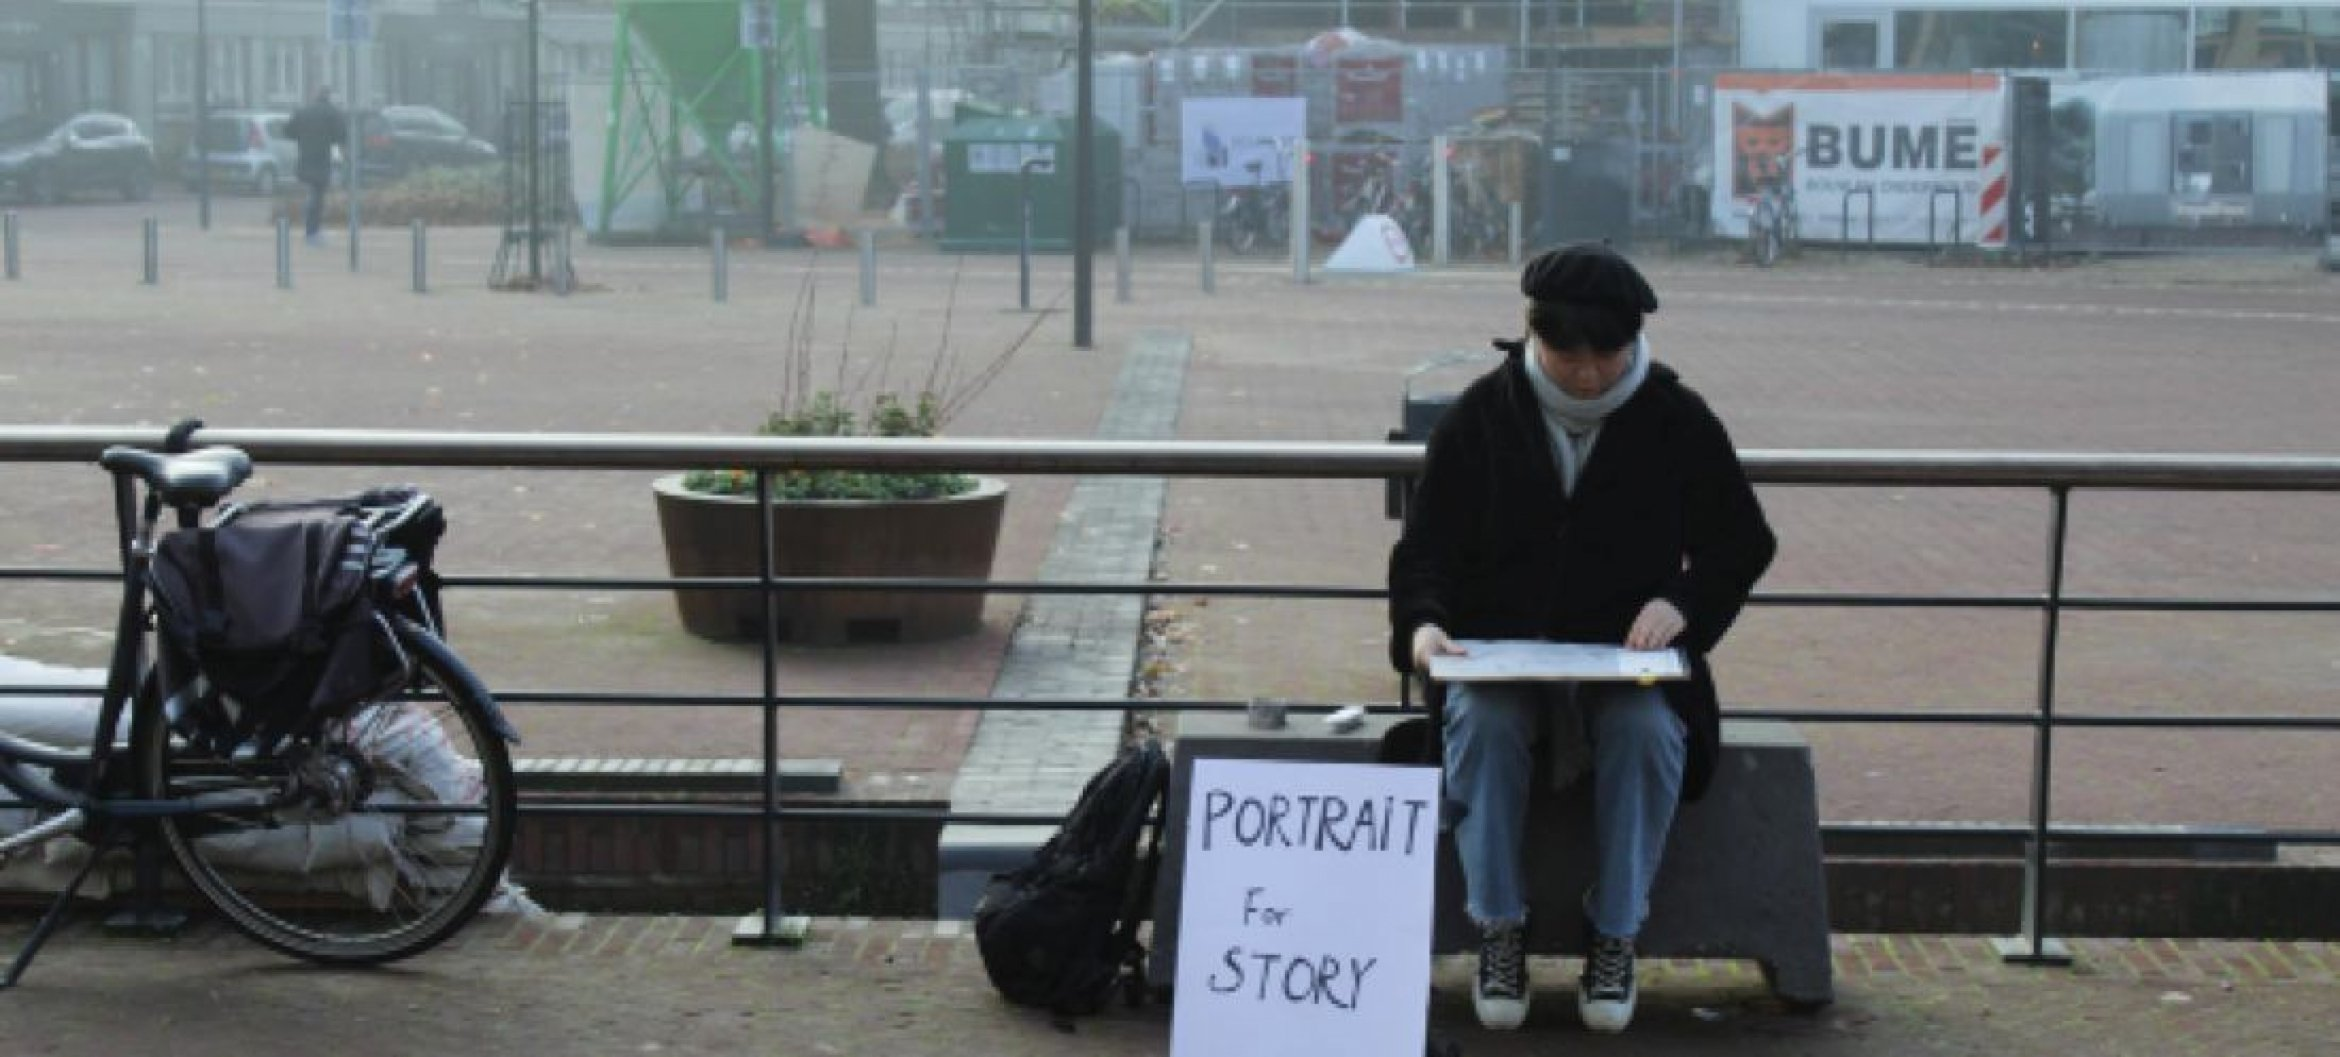 At ArtEZ, Rebecca Gomperts mentored  iMAE student Fangyu Jiang during her project 'Portrait for Story'